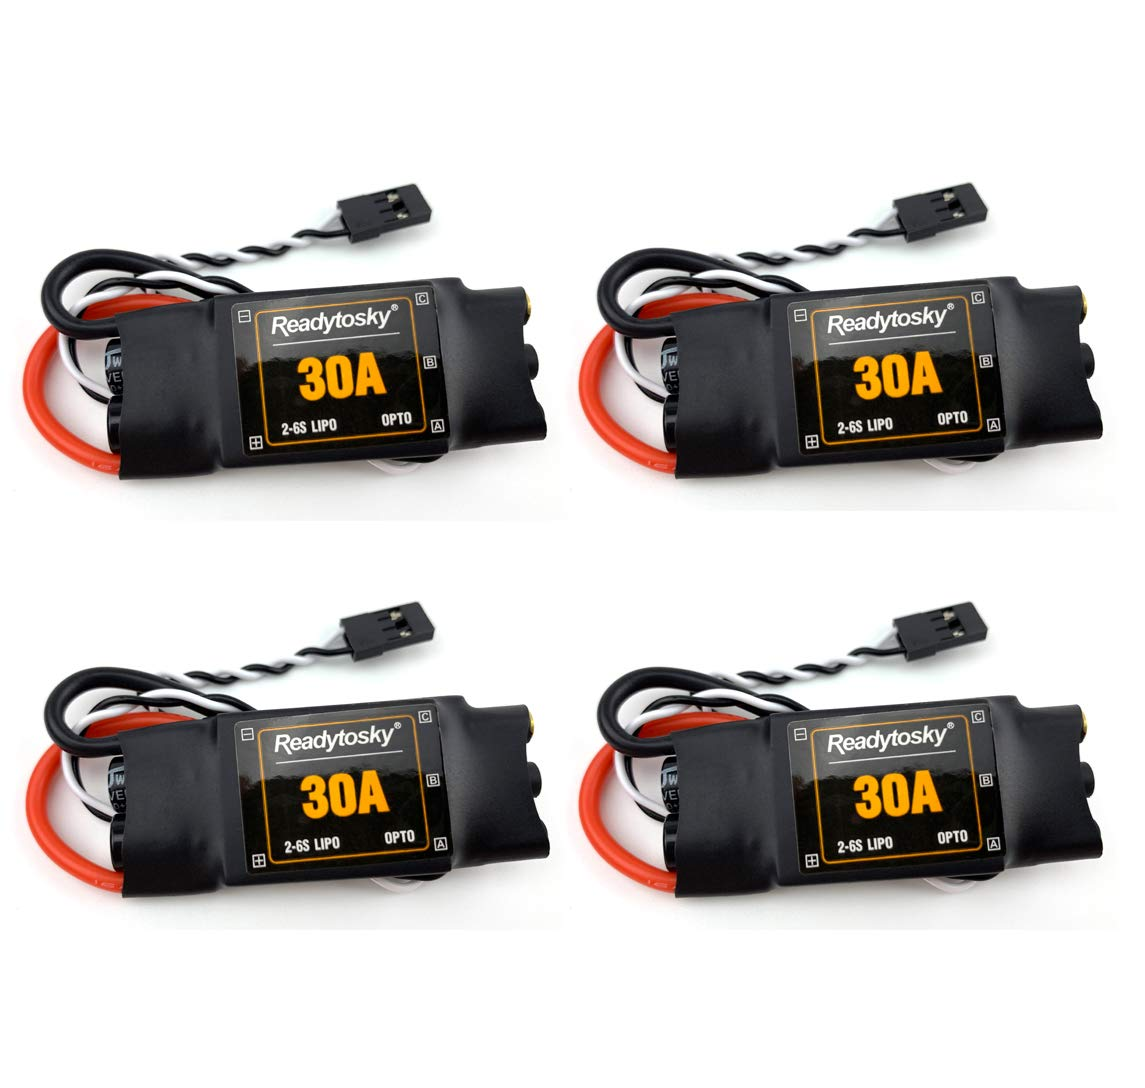 Readytosky 30A ESC Opto 2-6S Brushless Speed Controller for RC Quad Multicopter